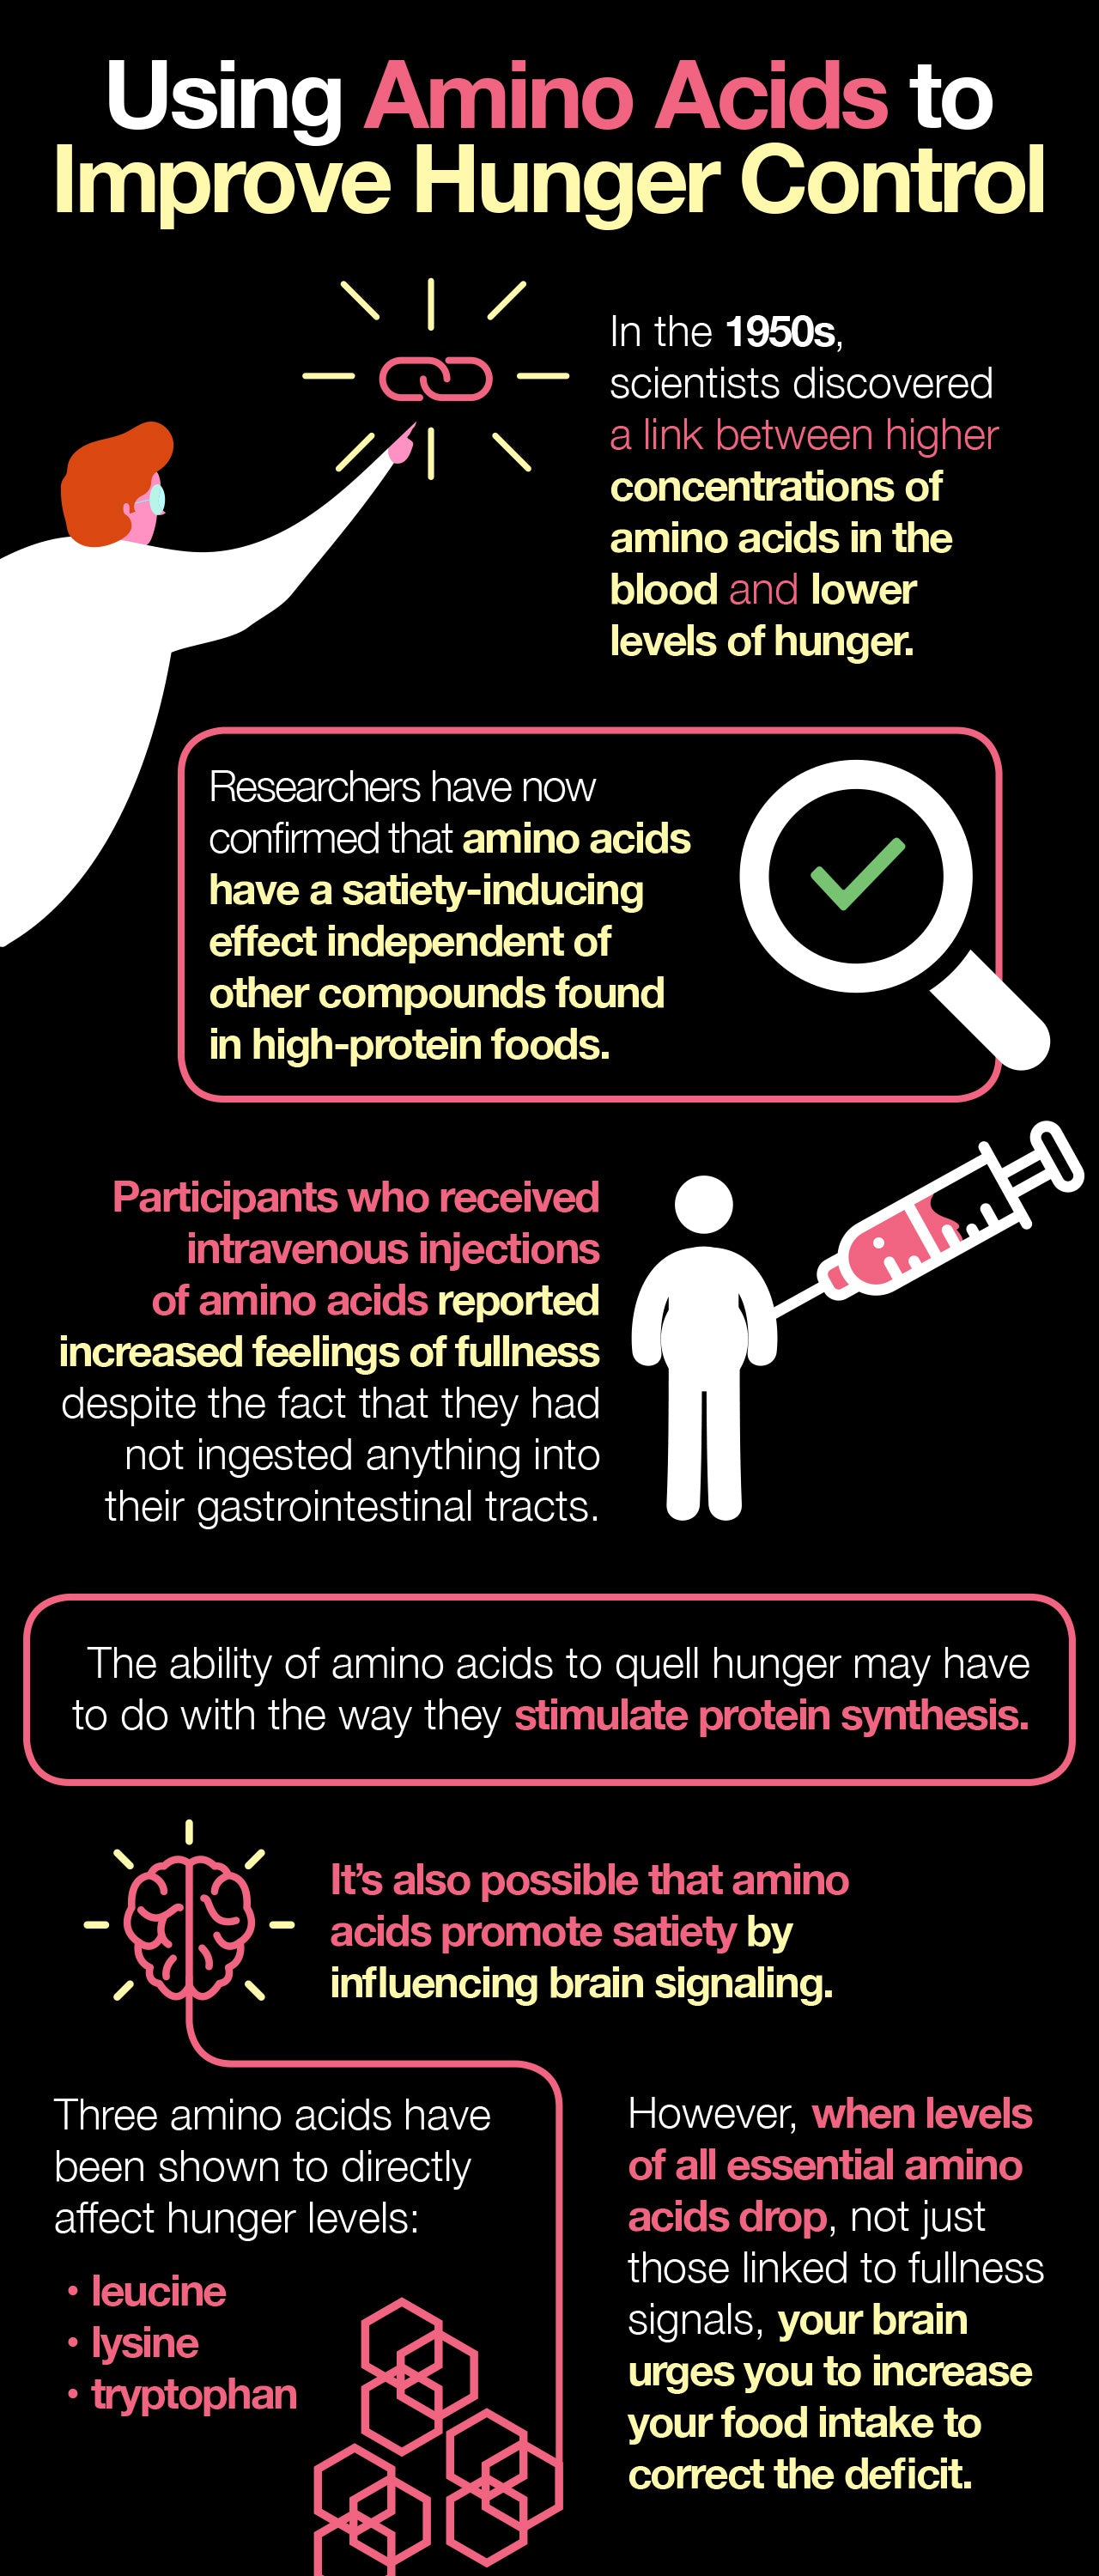 Dietary proteins and amino acids play key roles in hunger control.